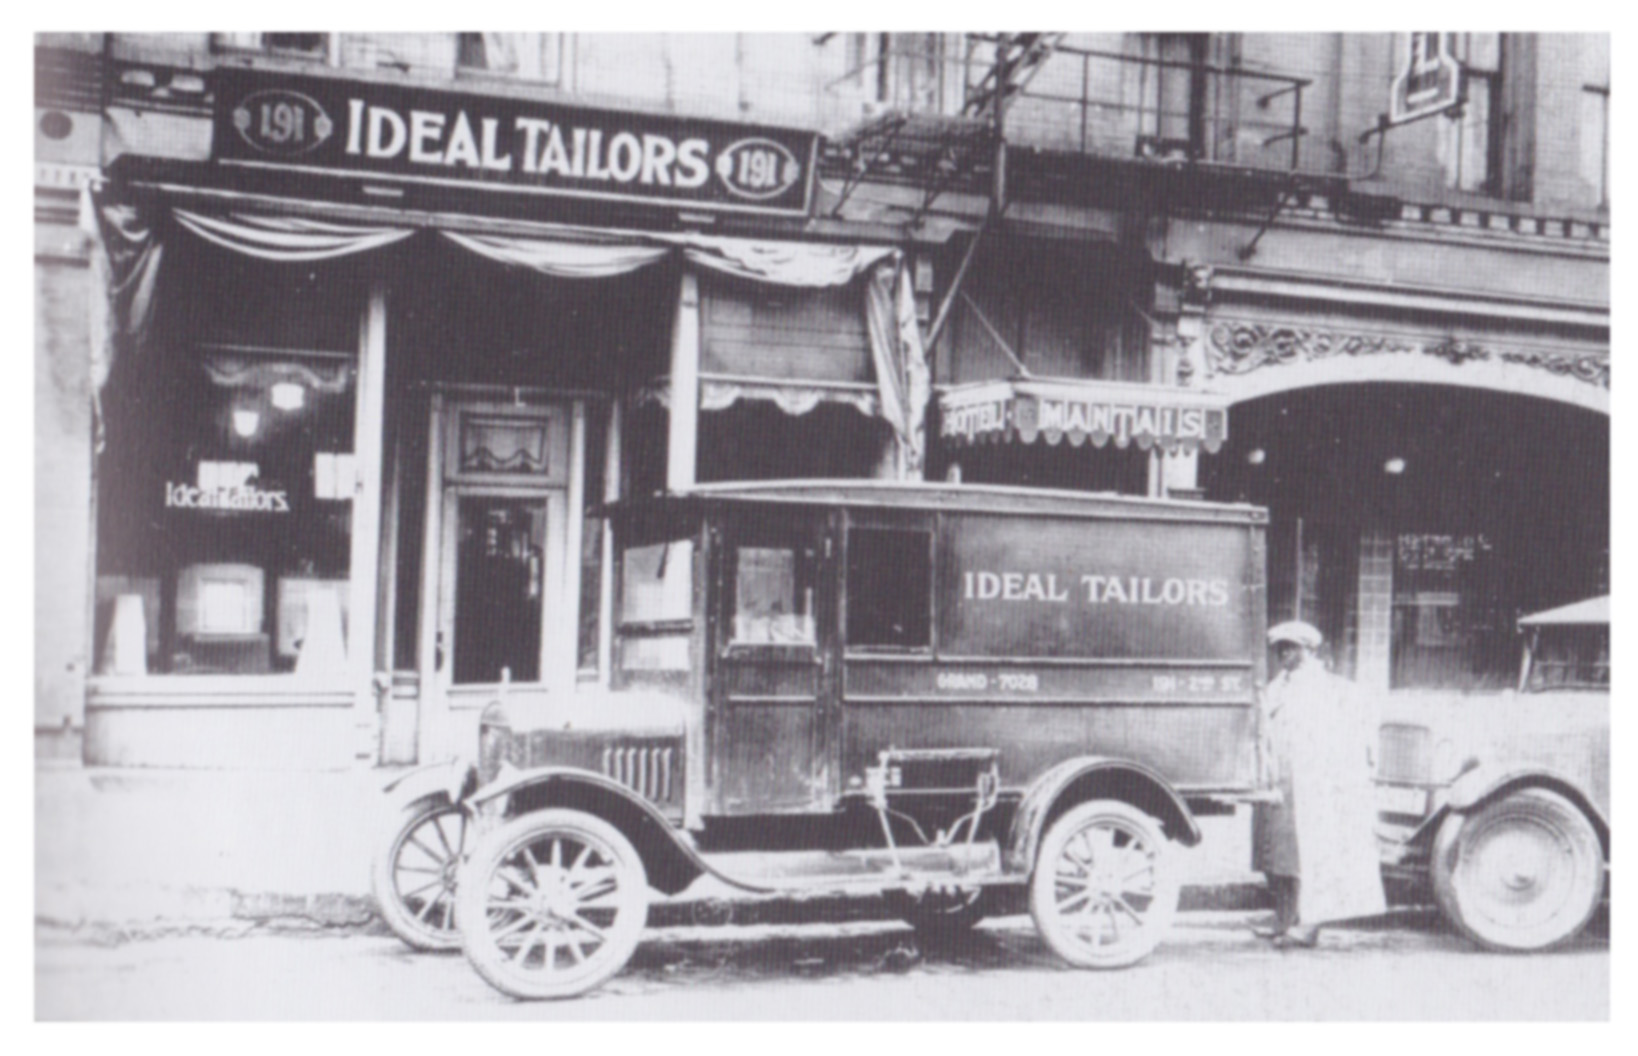 bronzeville-ideal-tailors-milwaukee